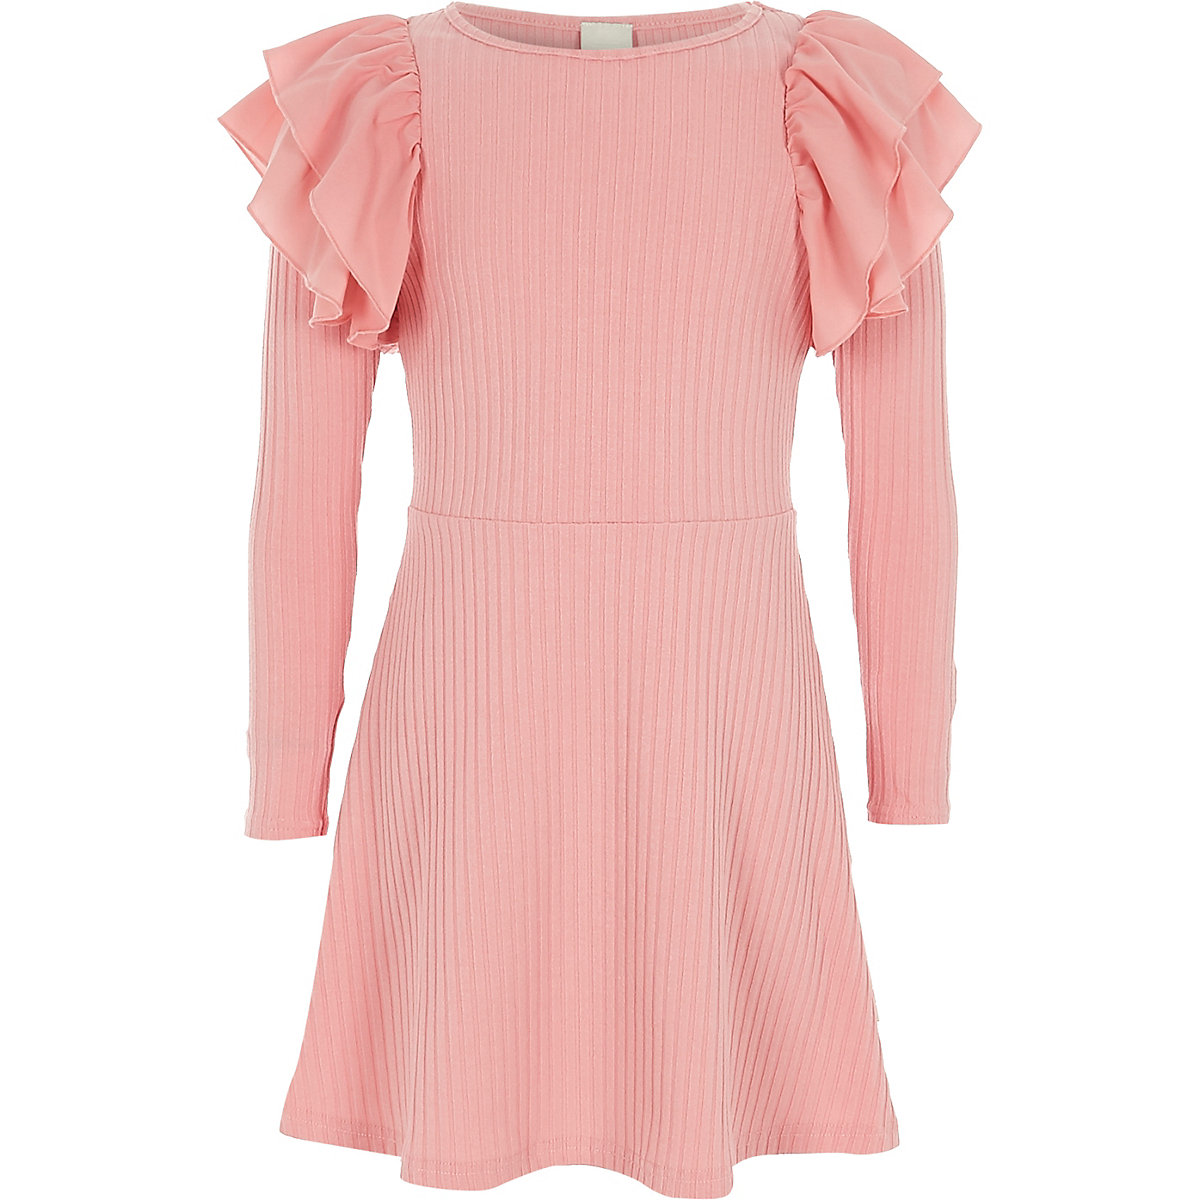 Girls pink frill ribbed midi dress